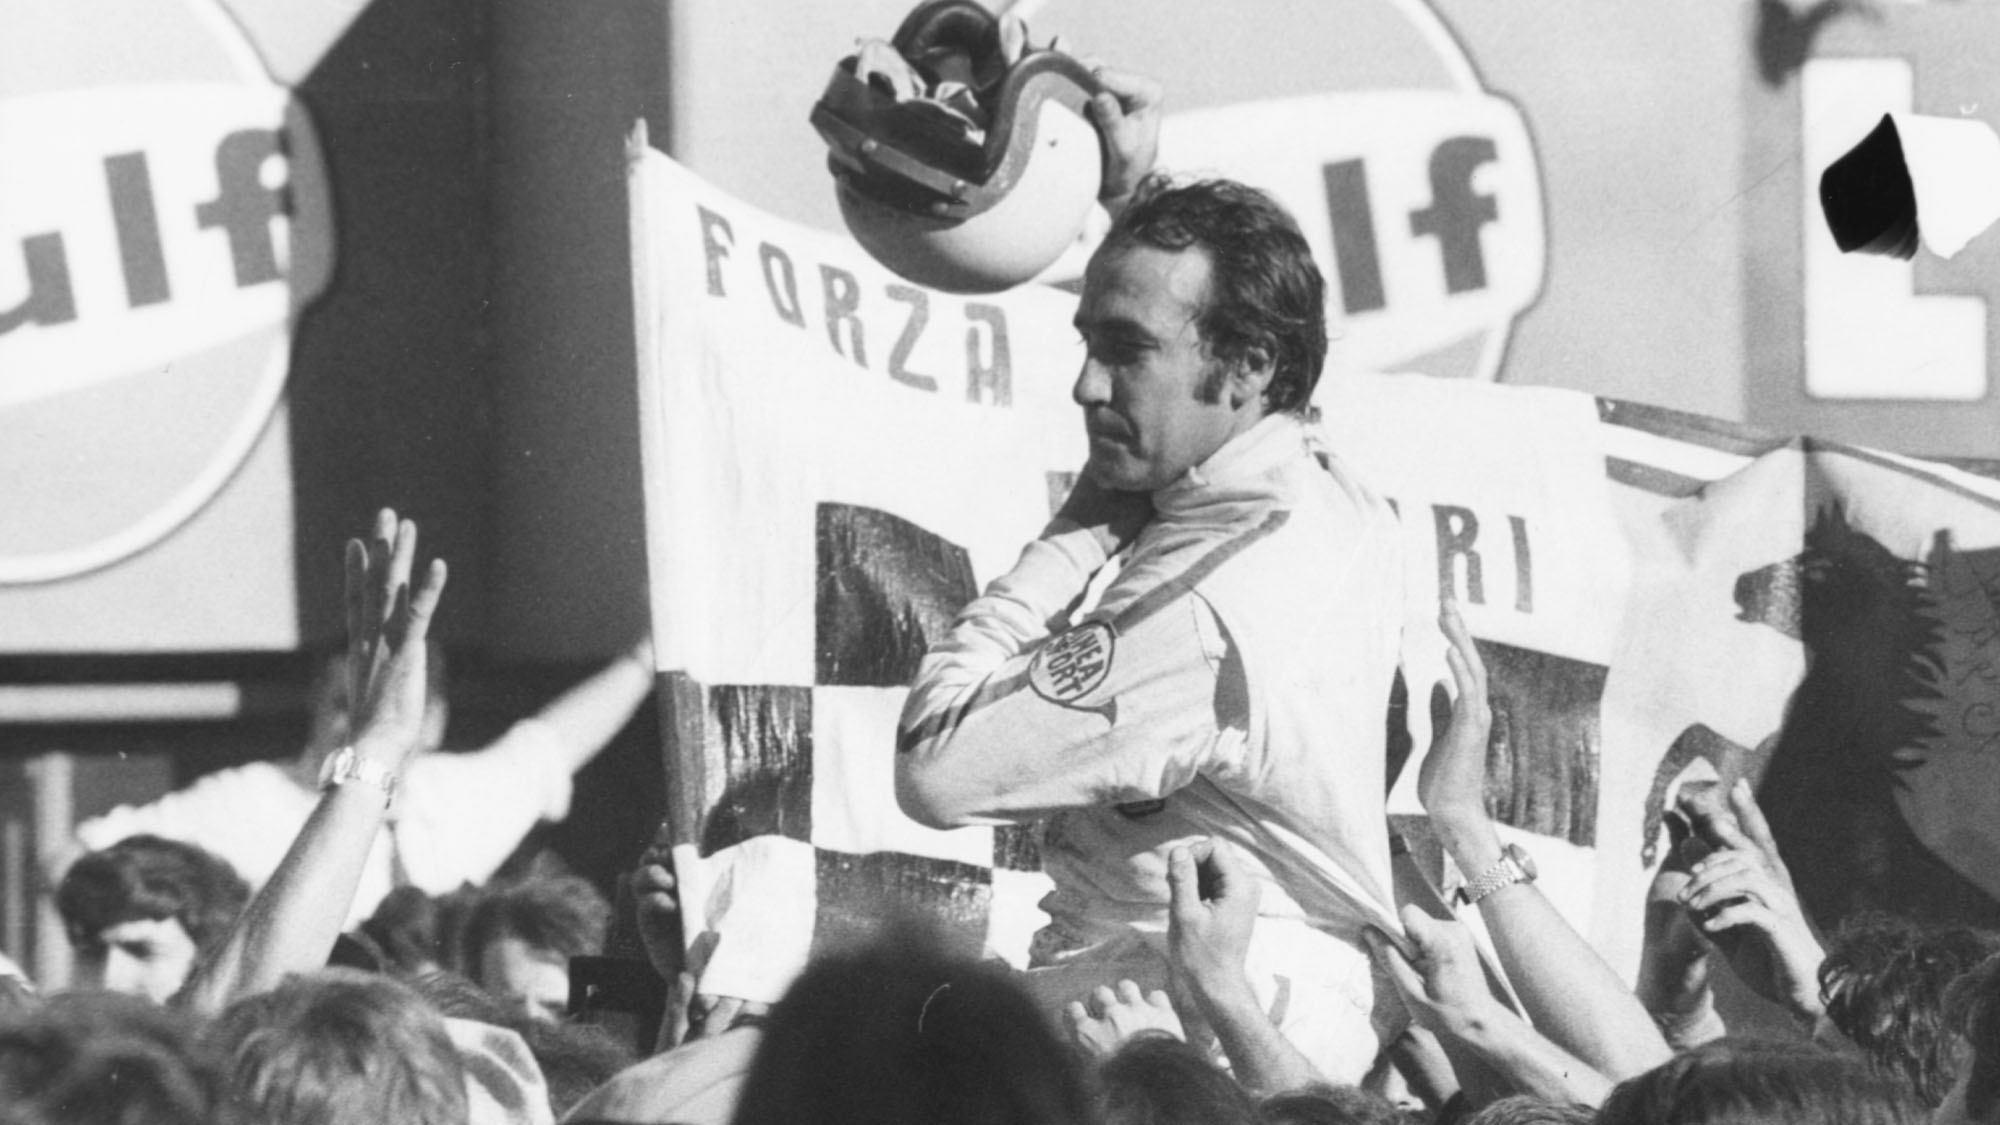 Swiss racing driver Clay Regazzoni is grabbed by members of the crowd after winning the Italian Grad Prix at Monza, September 8th 1970. (Photo by Keystone/Hulton Archive/Getty Images)